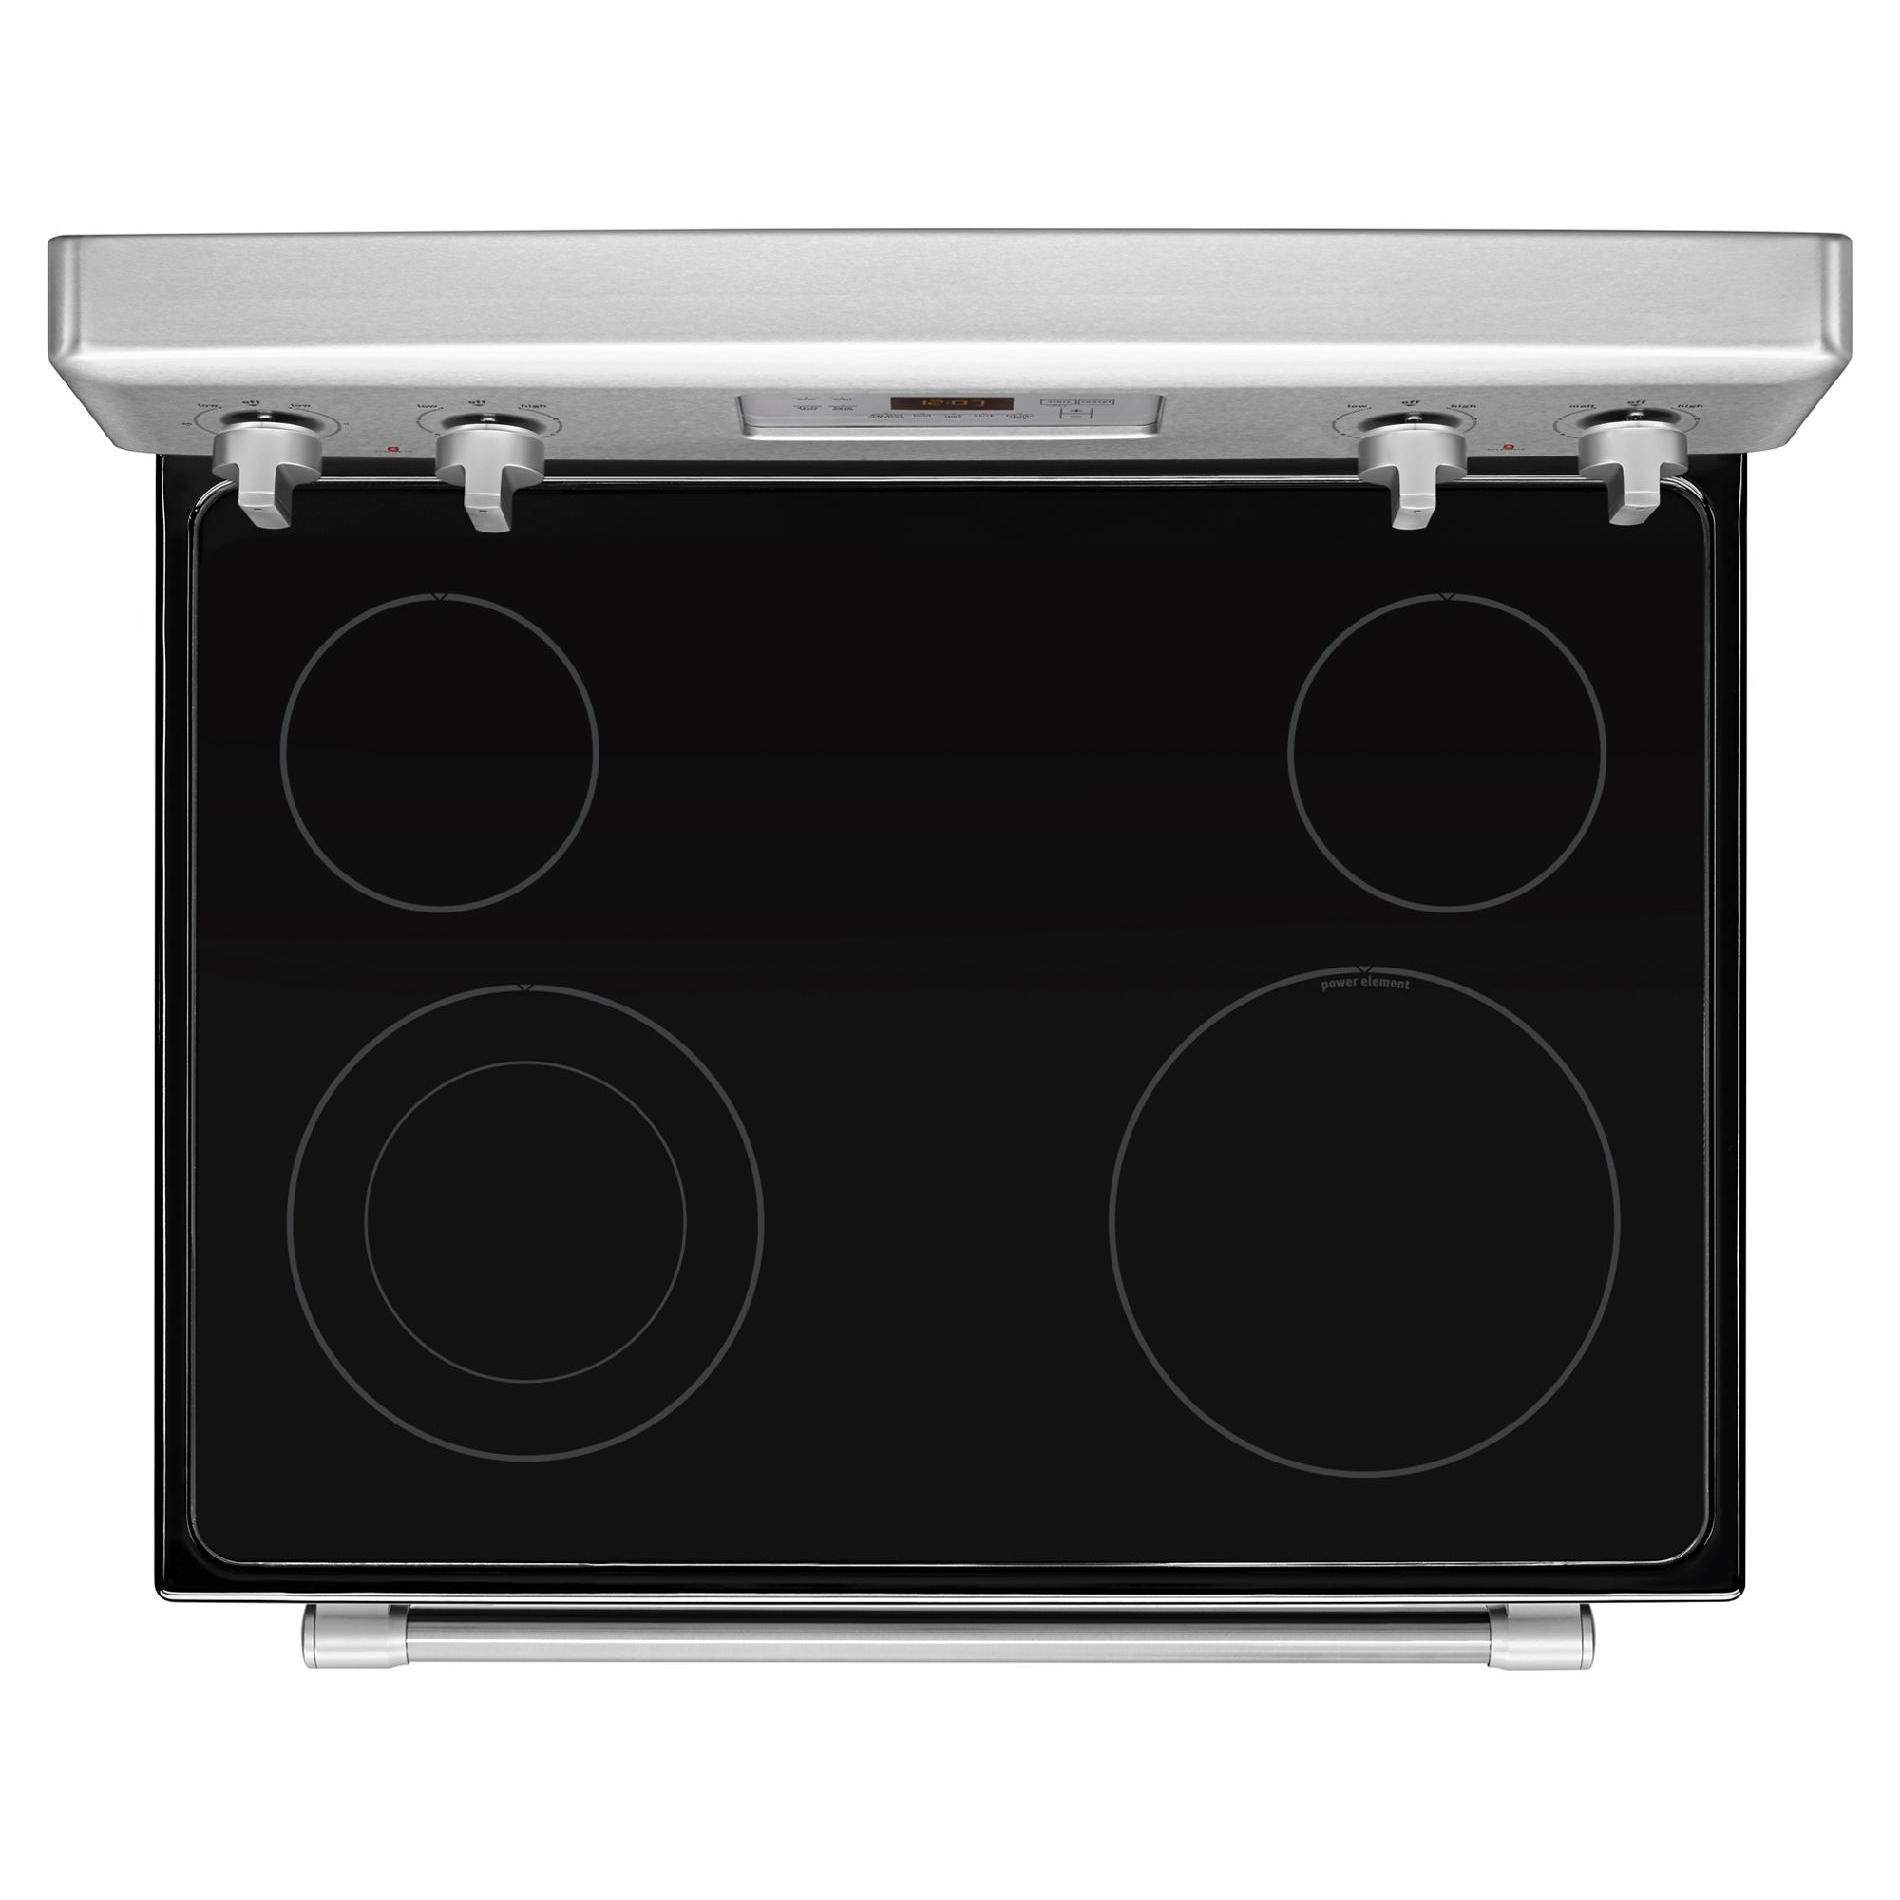 Maytag MER8600DS 6.2 cu. ft. Electric Range w/ Dual Element - Stainless Steel